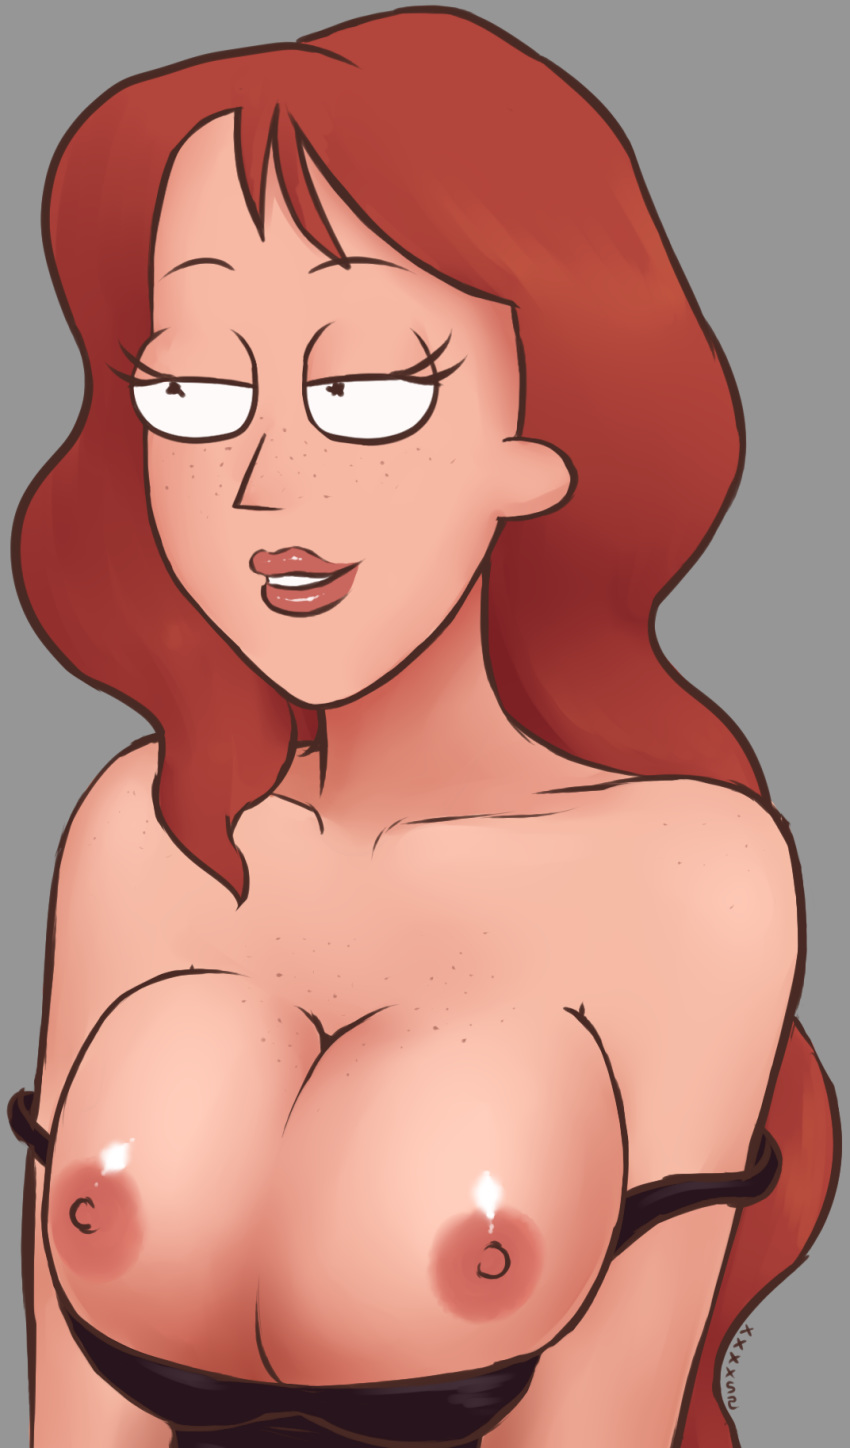 rick unity morty nude and Who is cassandra in tangled